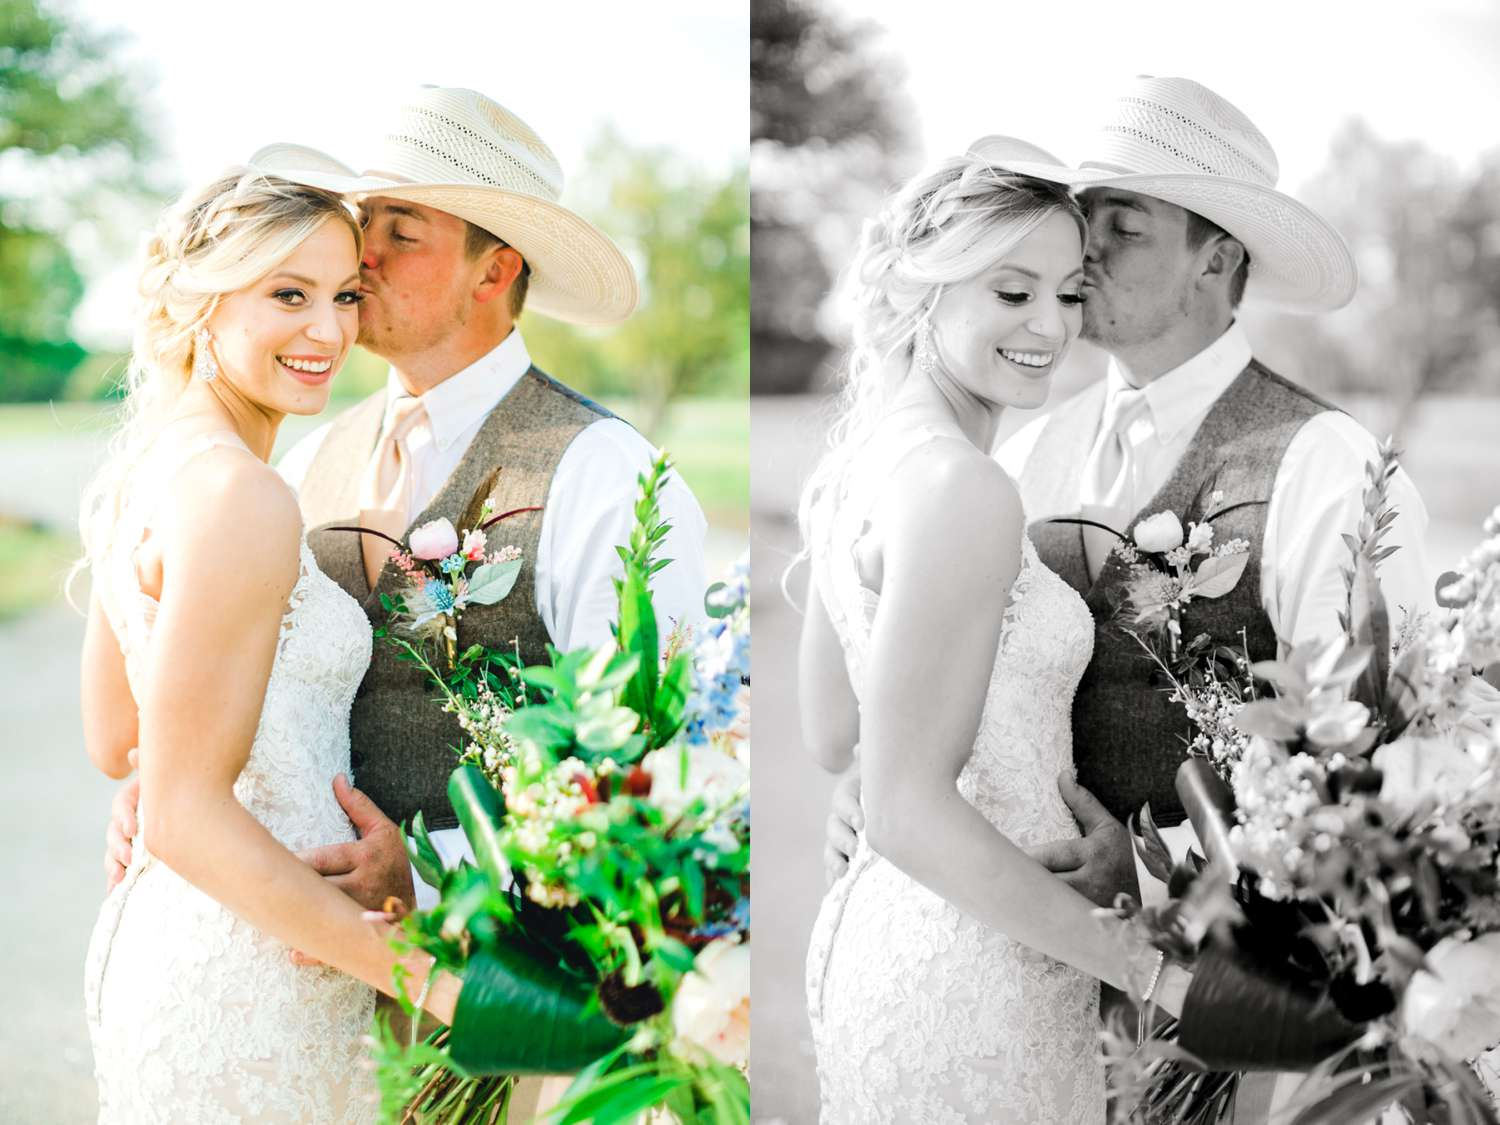 SARAH+TREVOR+BADGETT+SPARROW+CREEK+GRAHAM+TEXAS+ALLEEJ+WEDDINGS_0092.jpg